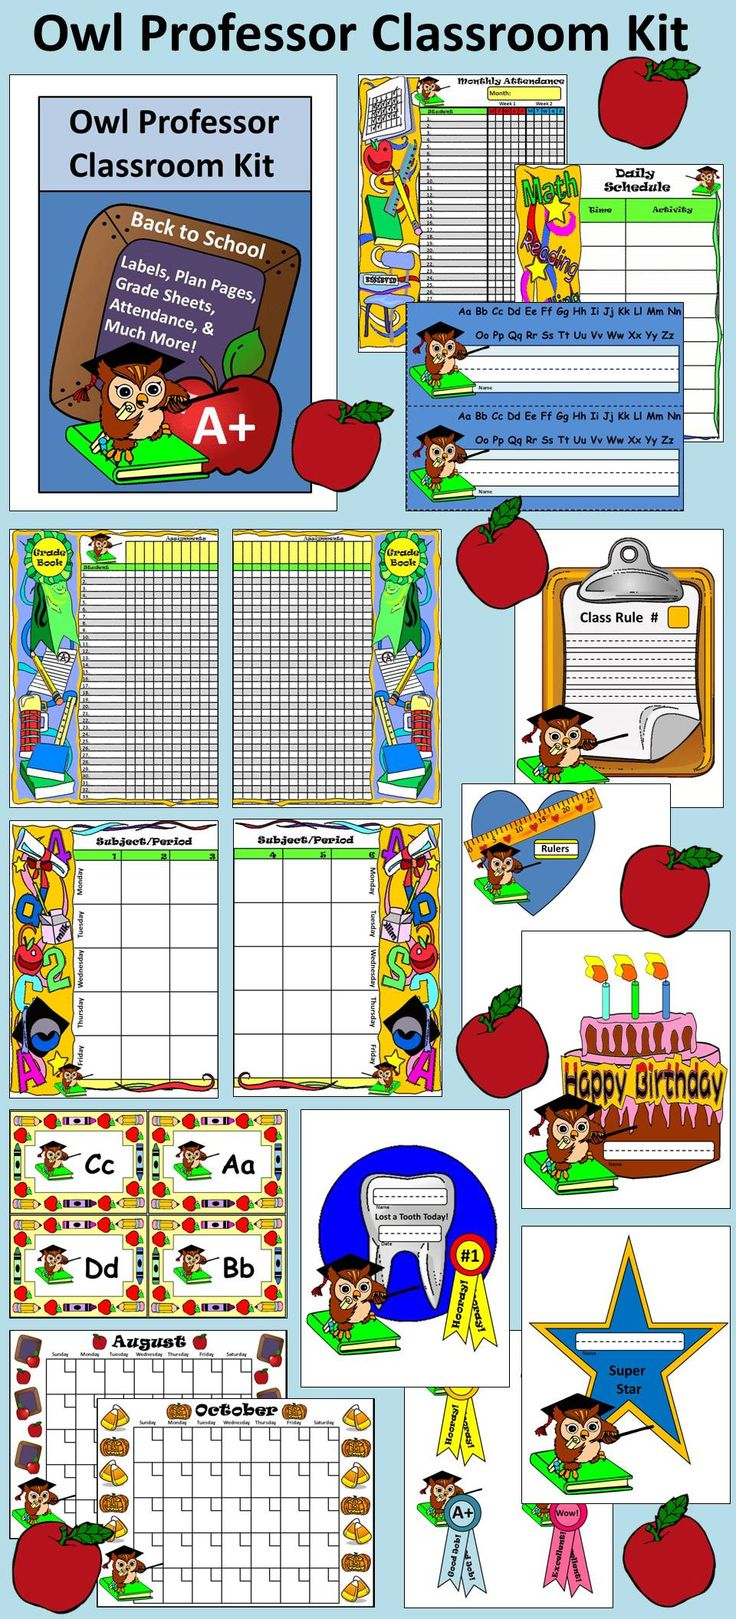 Owl Professor Classroom Kit: Contains classroom management items. Print out, fill in, and cut out. Kit includes color & b/w versions.  Contents include: * Desk Nameplates * Classroom Rules Template * Classroom Supply Labels * Super Student Template * Birthday Celebration Template * Lost a Tooth Template * Ribbon/Medal Templates * Word Wall Heading Cards * Daily Schedule Sheets * Weekly Attendance Sheet * Monthly Attendance Sheets * Grade Book Sheets * Lesson Plan Sheets * Set of Calendar…